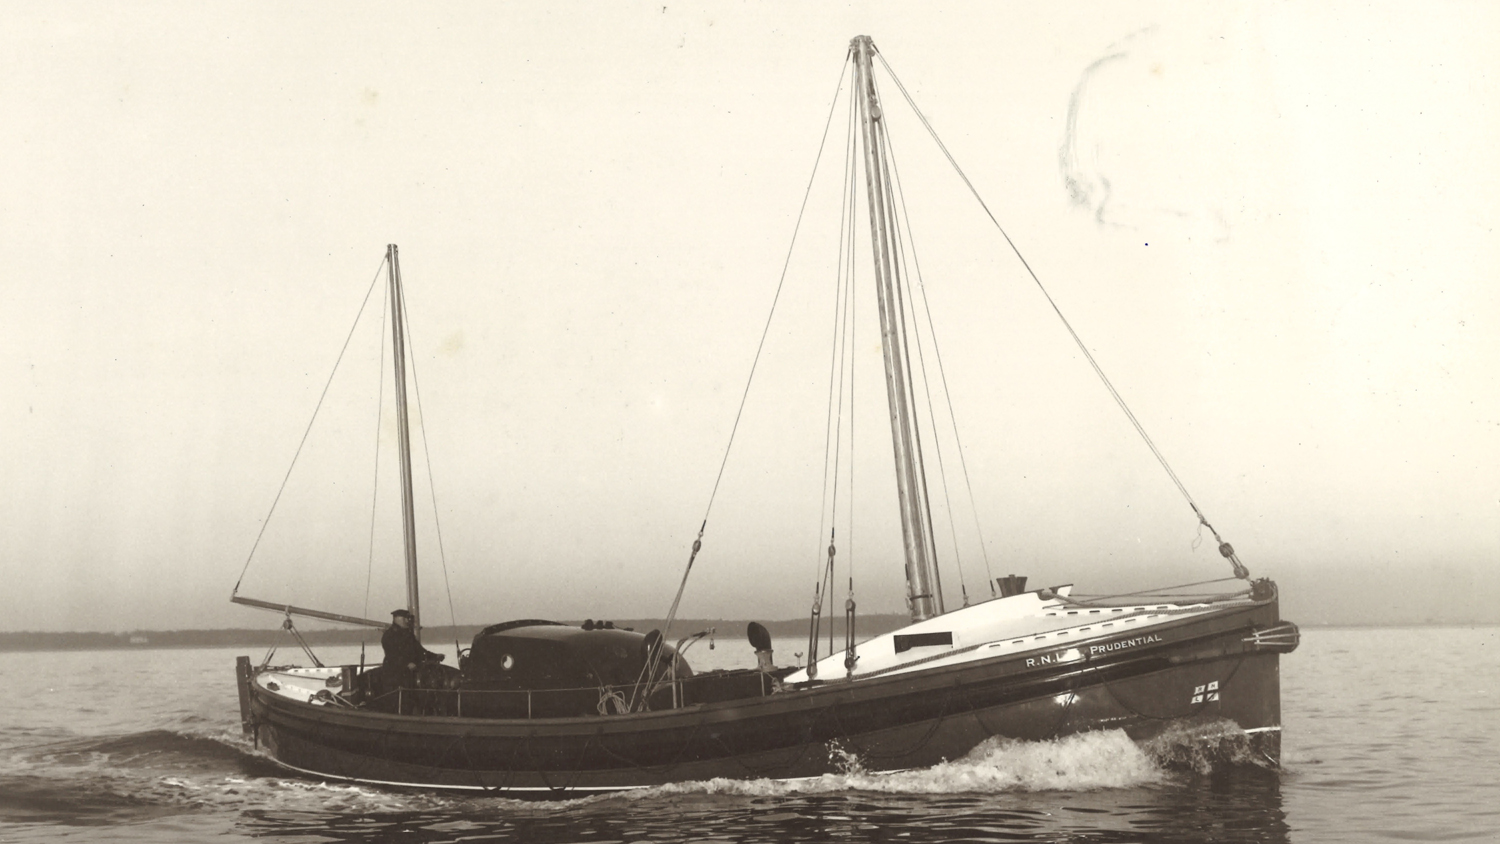 Ramsgate class lifeboat Prudential, that took the Ramsgate crew to Dunkirk